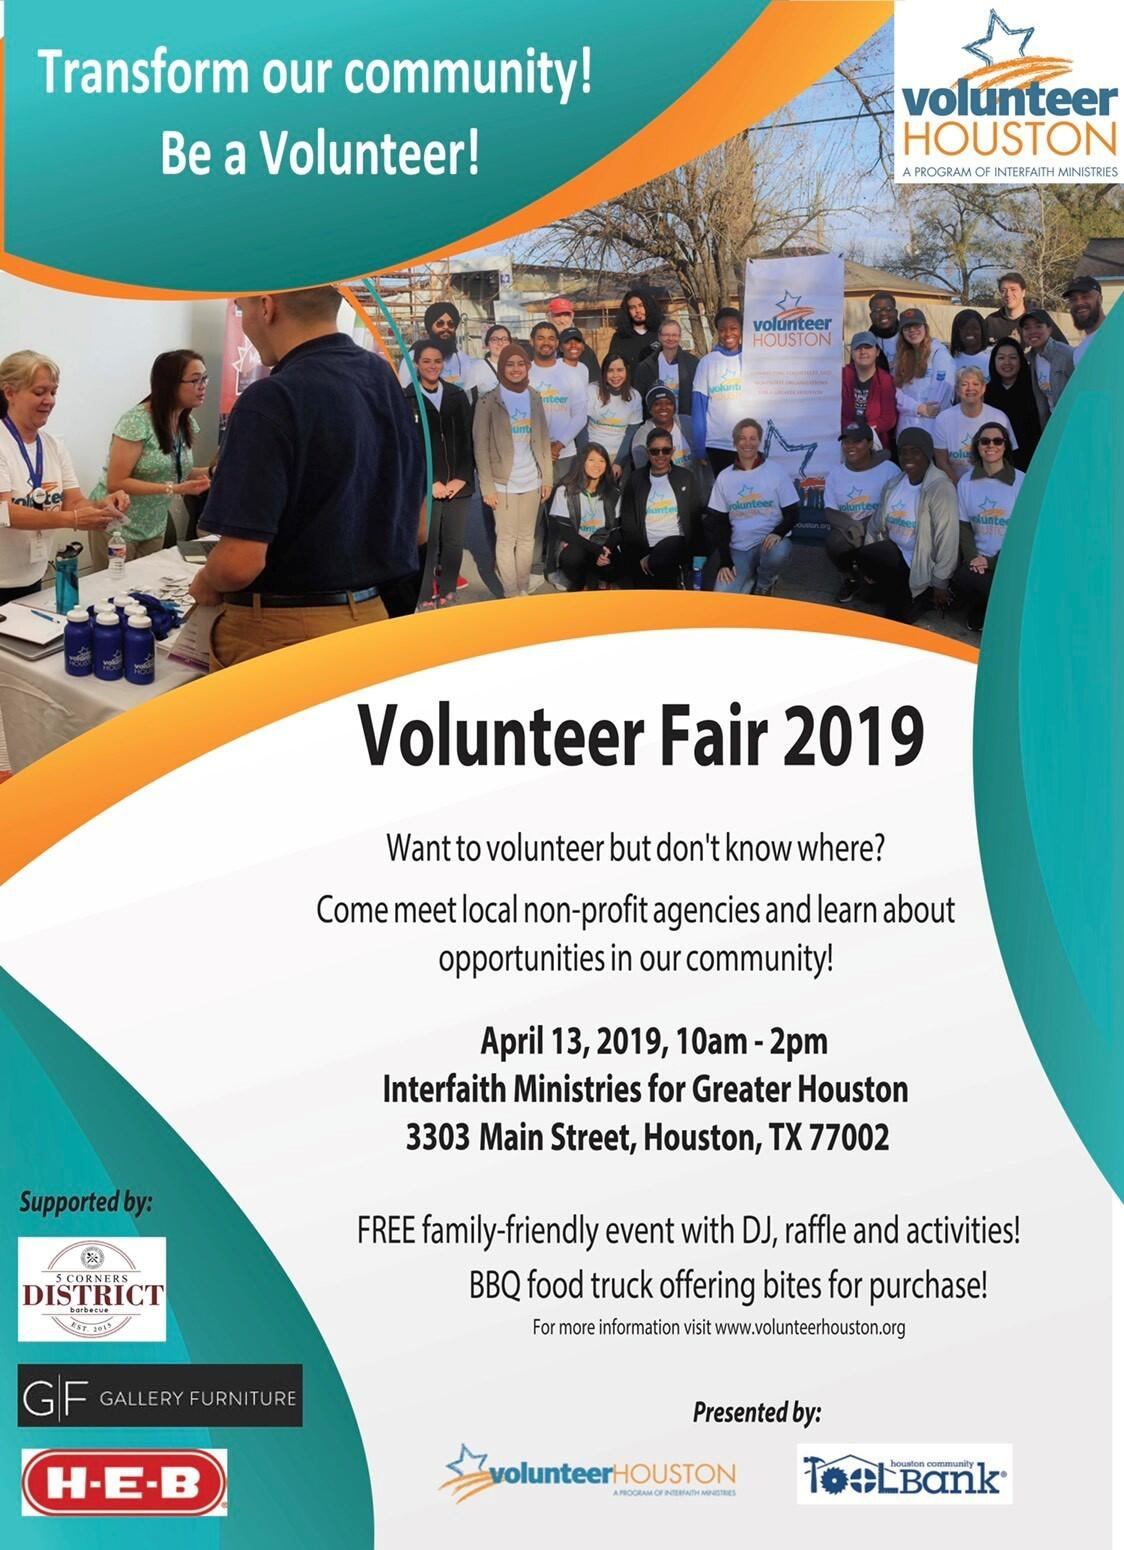 Volunteer Fair 2019 - Connect to Community Service Projects